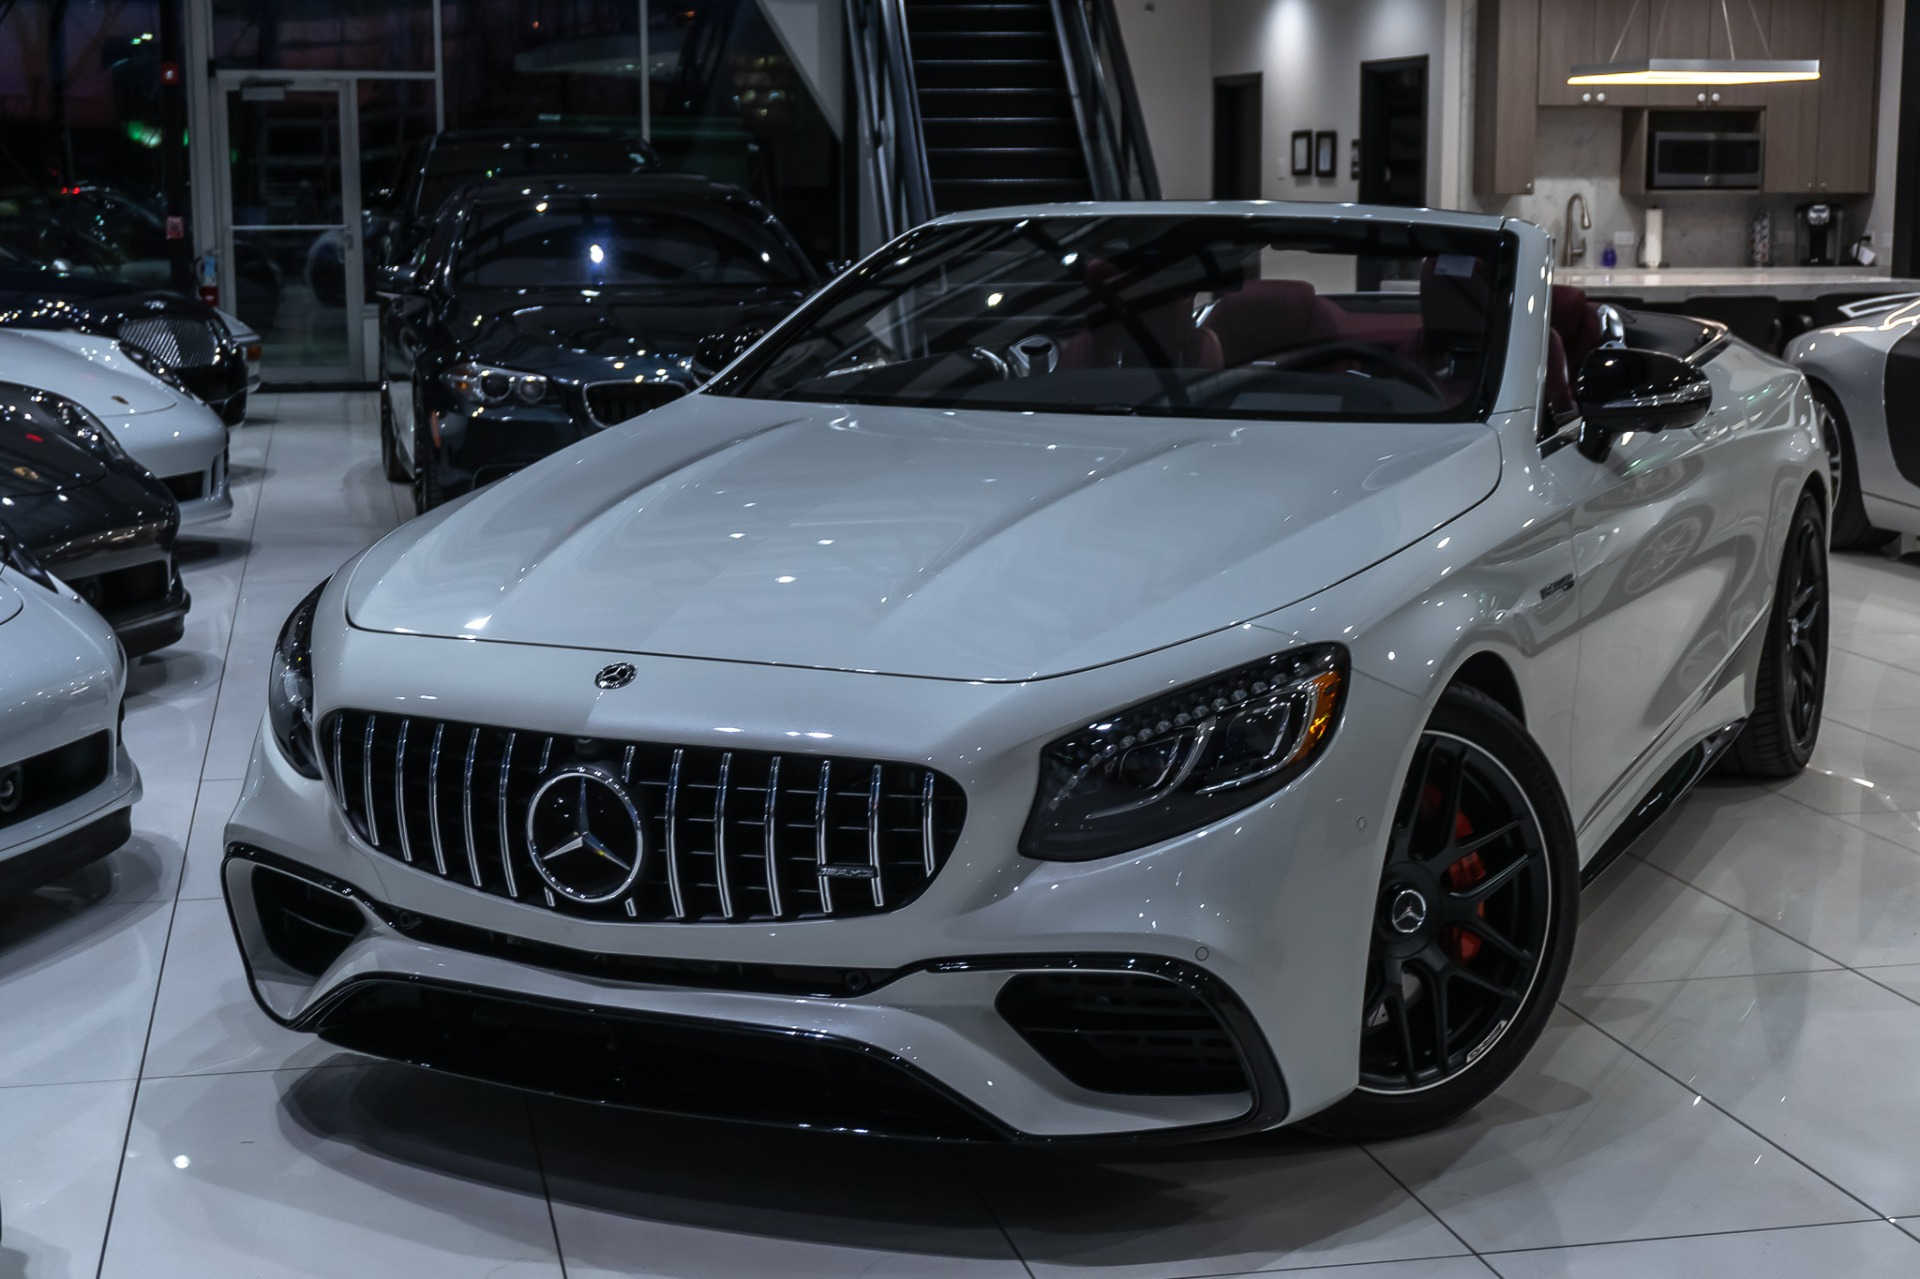 Used 2019 Mercedes-Benz S63 AMG Cabriolet 4Matic Exclusive ...